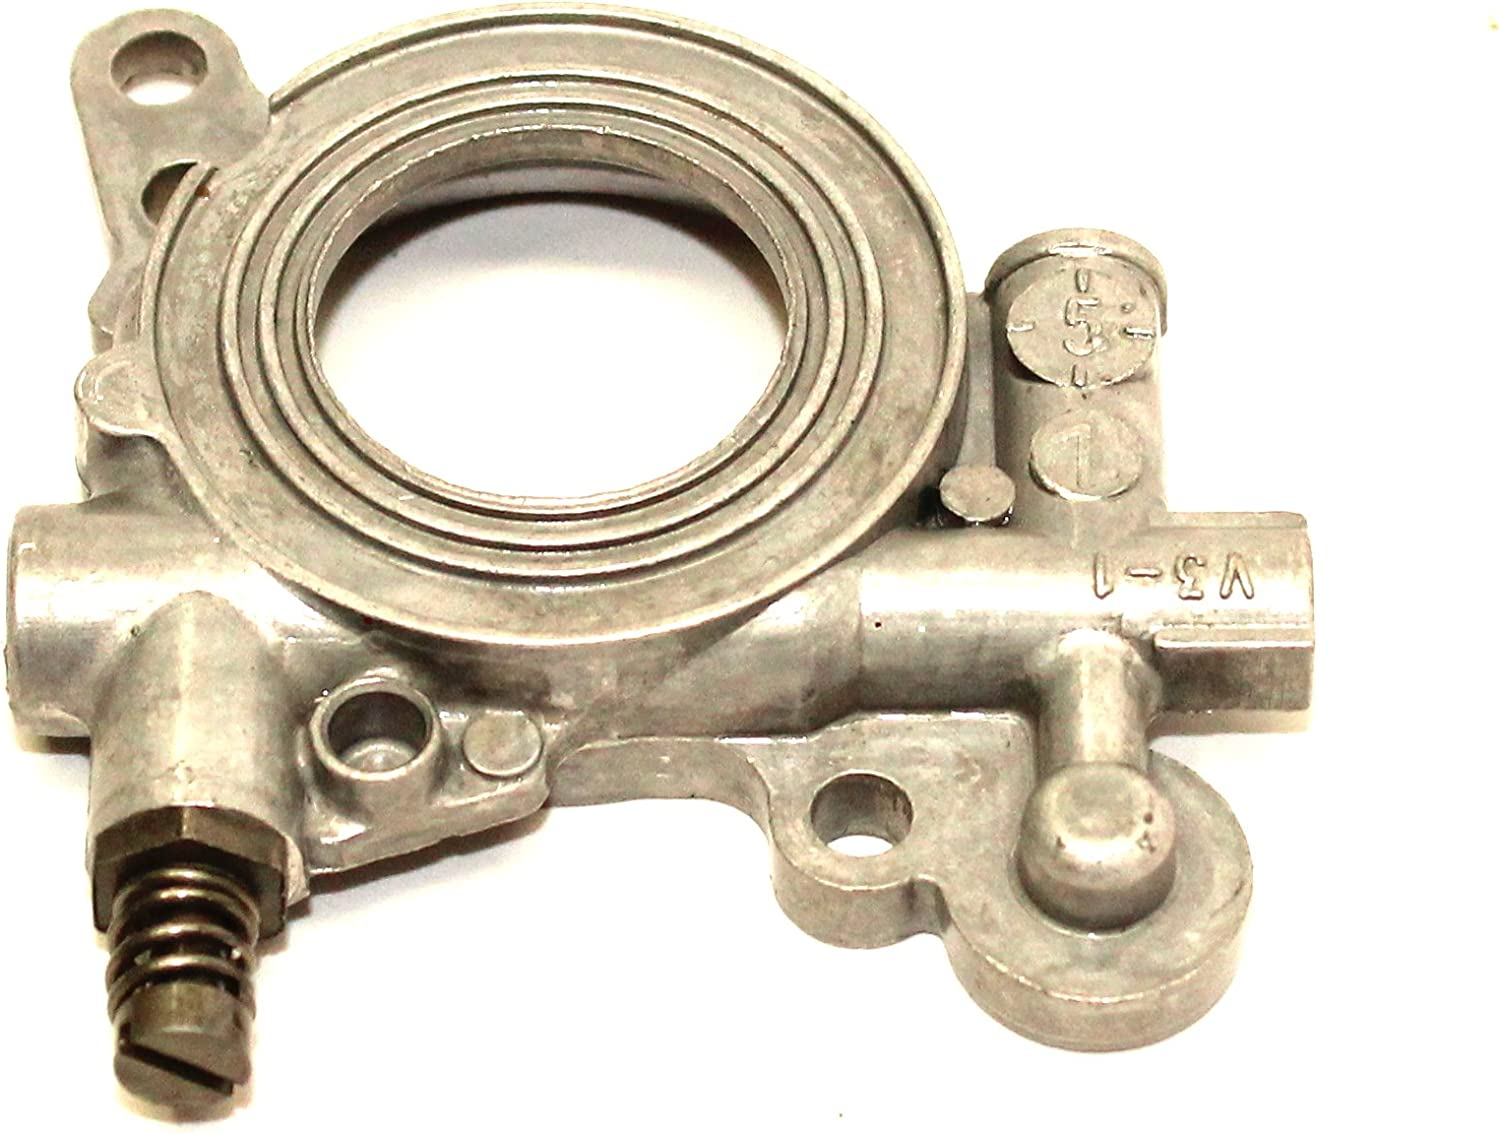 Oil Oiler Pump Fit for Husqvarna 362 365 371 372 385 390 Chainsaw 503521301